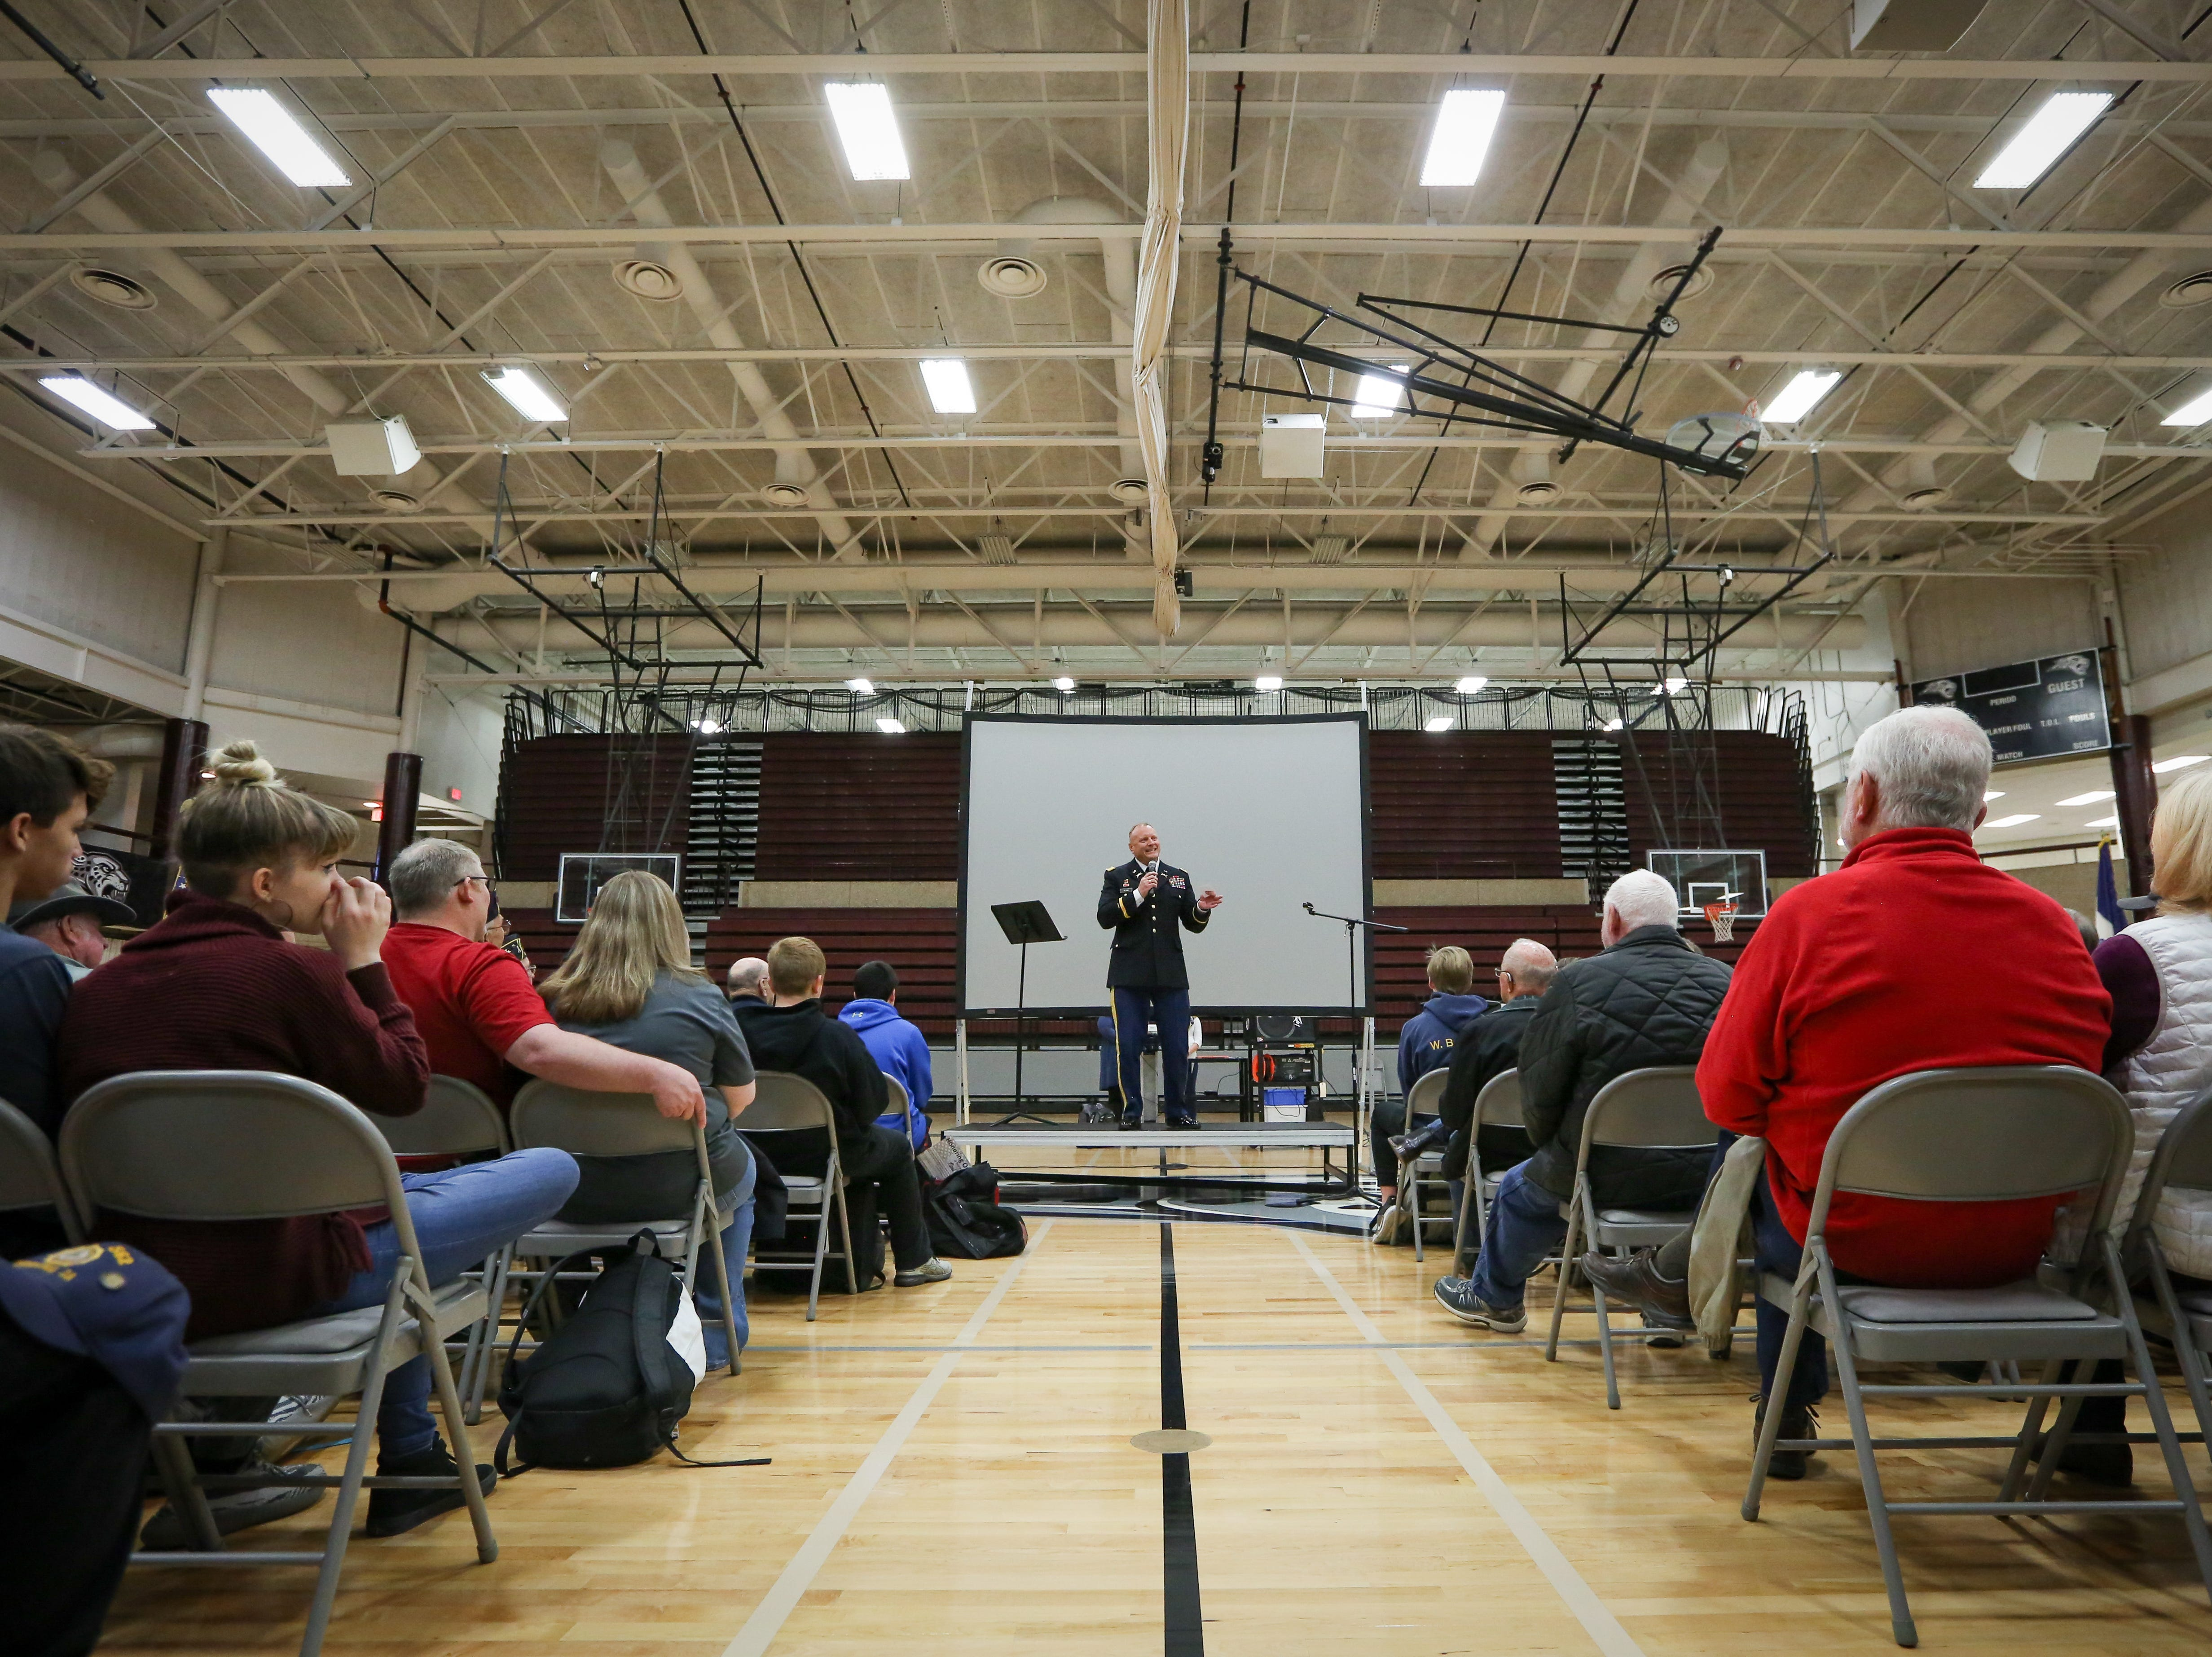 Colonel Tim Glynn, from the Army, gives a speech during Veterans Day Breakfast at Northview Middle School on Wednesday, Nov. 14, 2018 in Ankeny, Iowa.